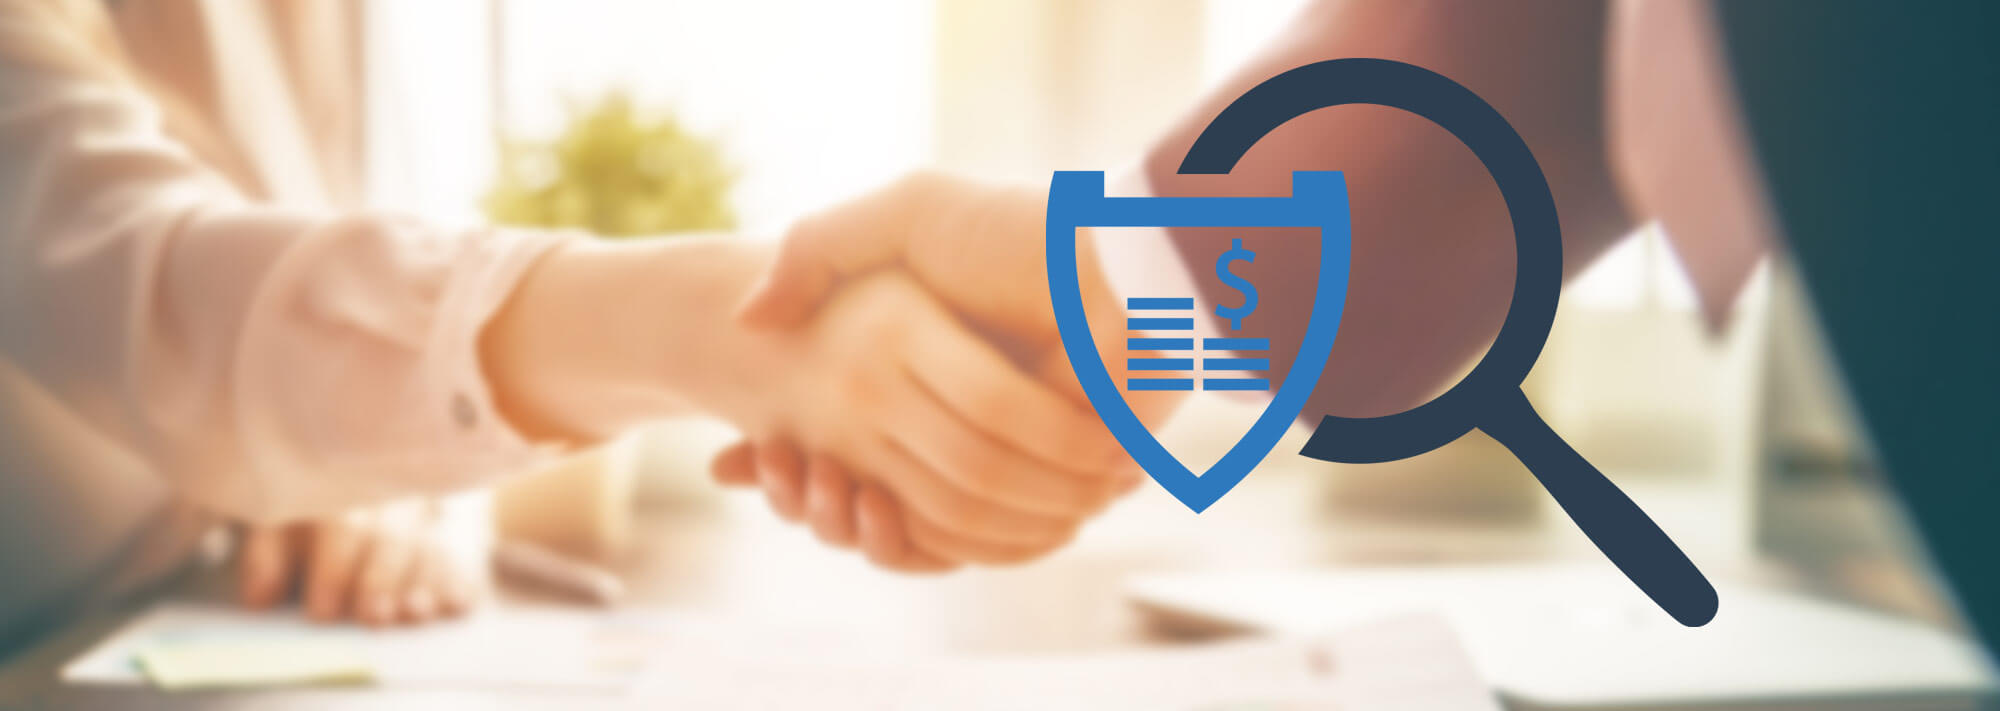 Insurance searching / shopping theme: Magnifying glass on top of a cost estimate in the foreground with people shaking hands in the background